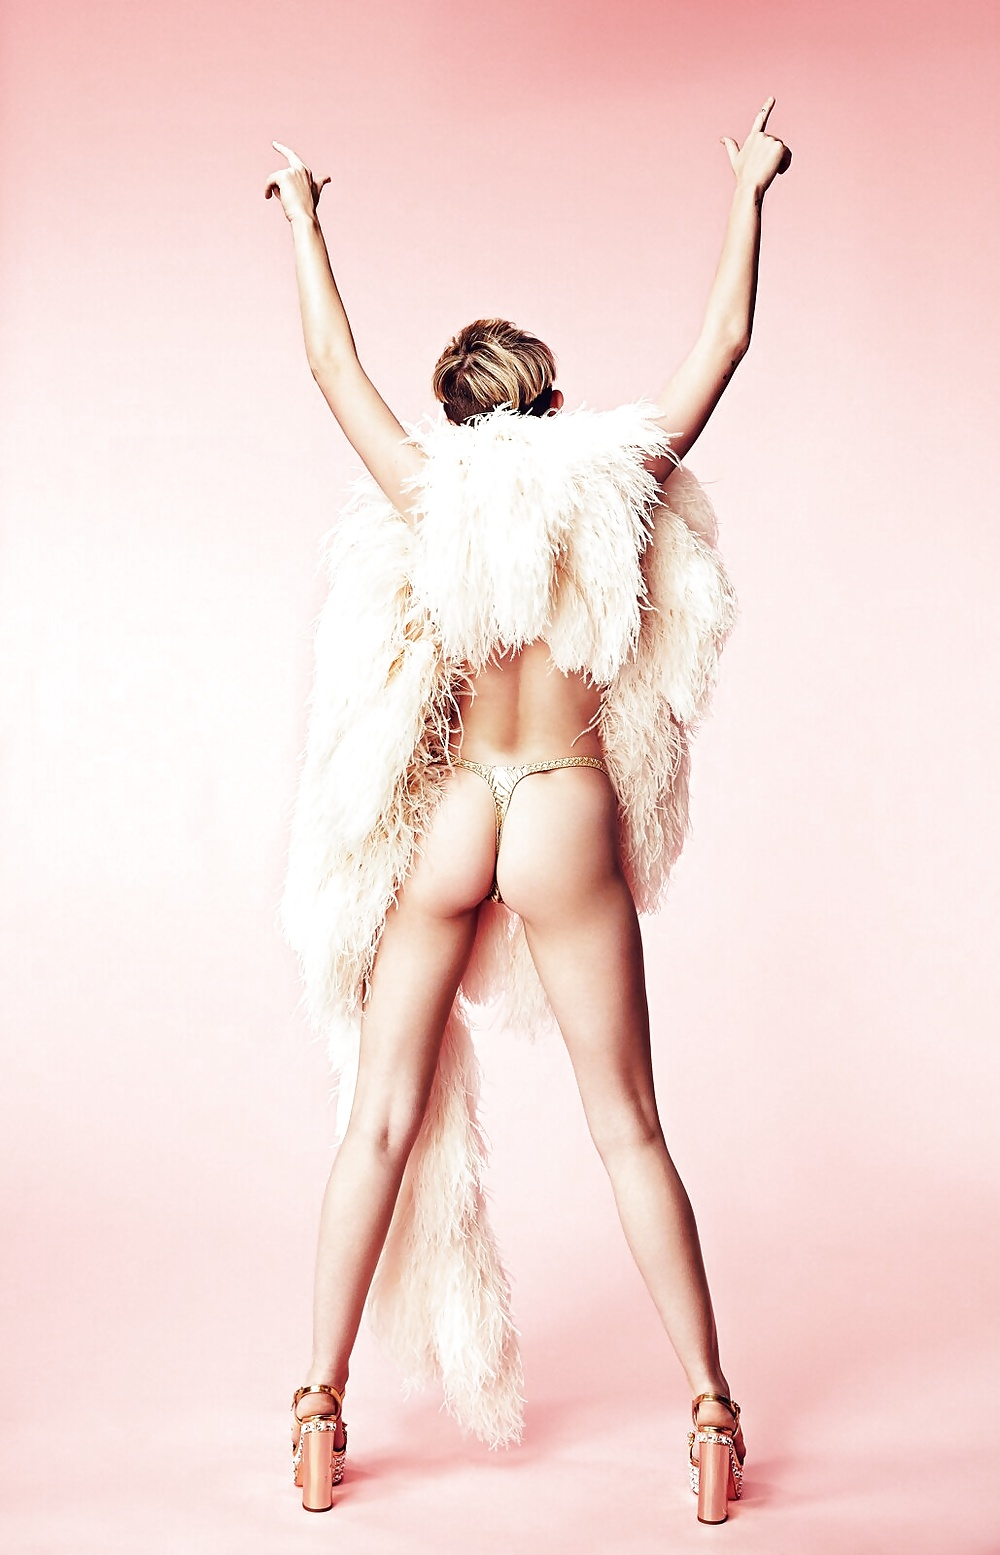 miley-cyrus-feet-and-ass-naked-sportgirls-nude